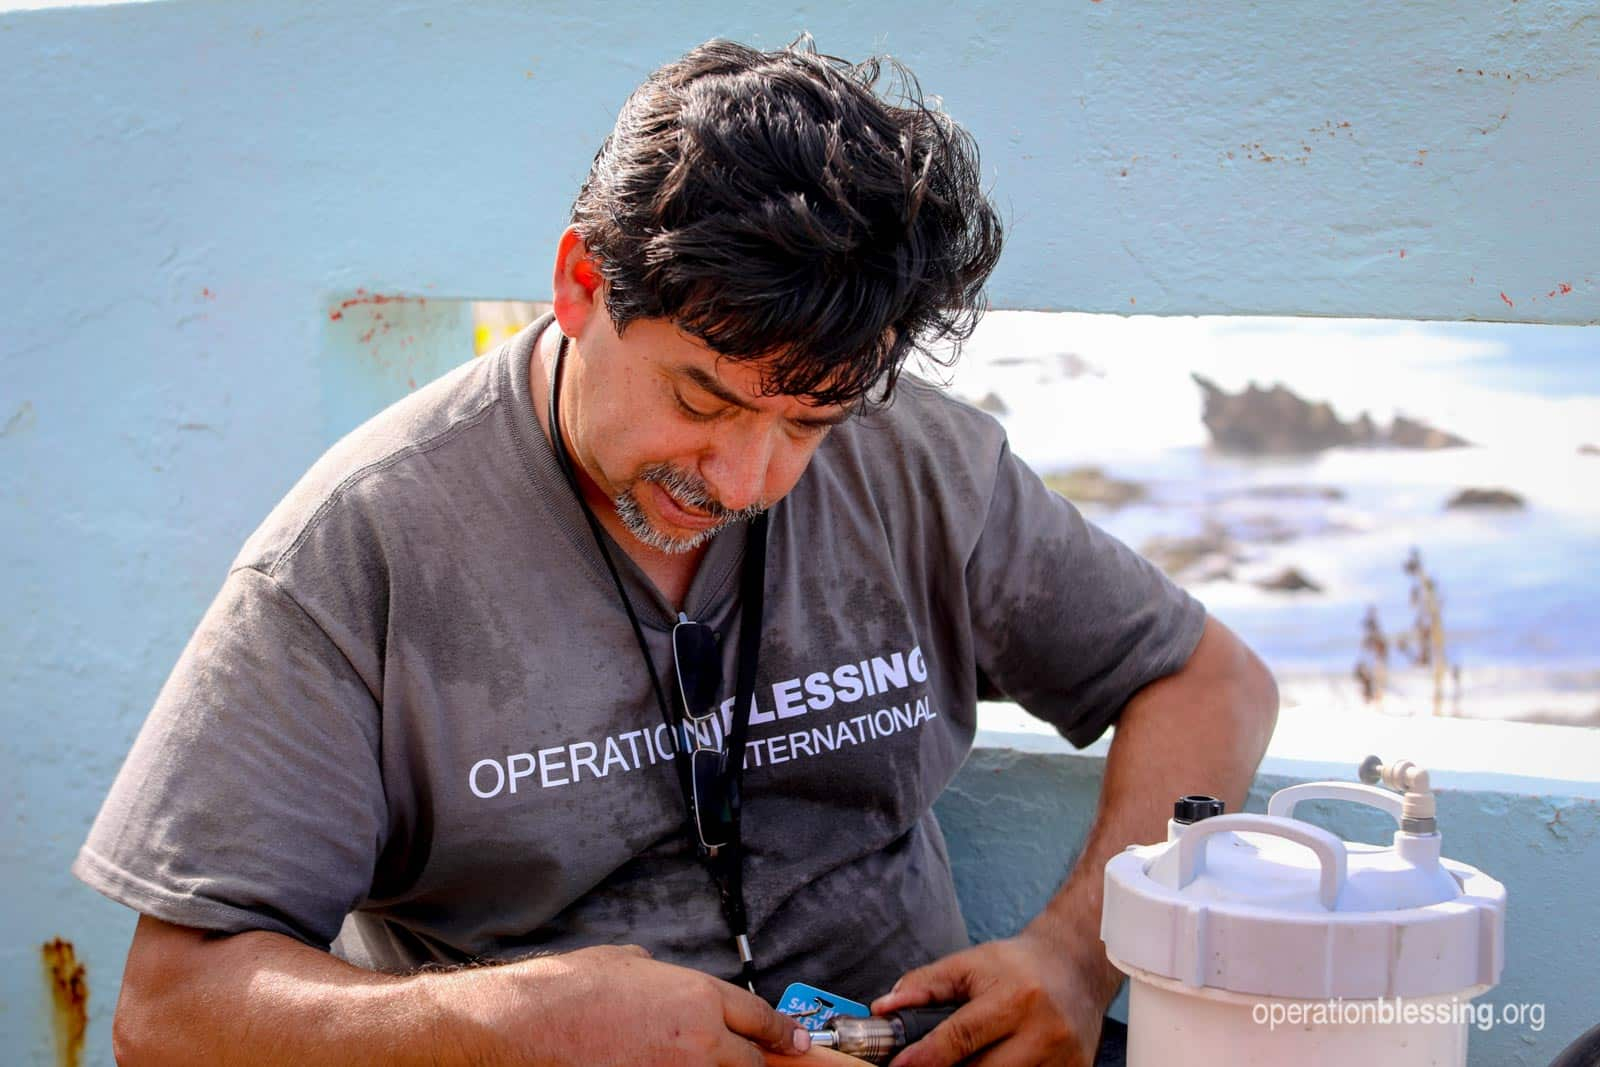 An Operation Blessing staff member gets the desalination unit up and running.